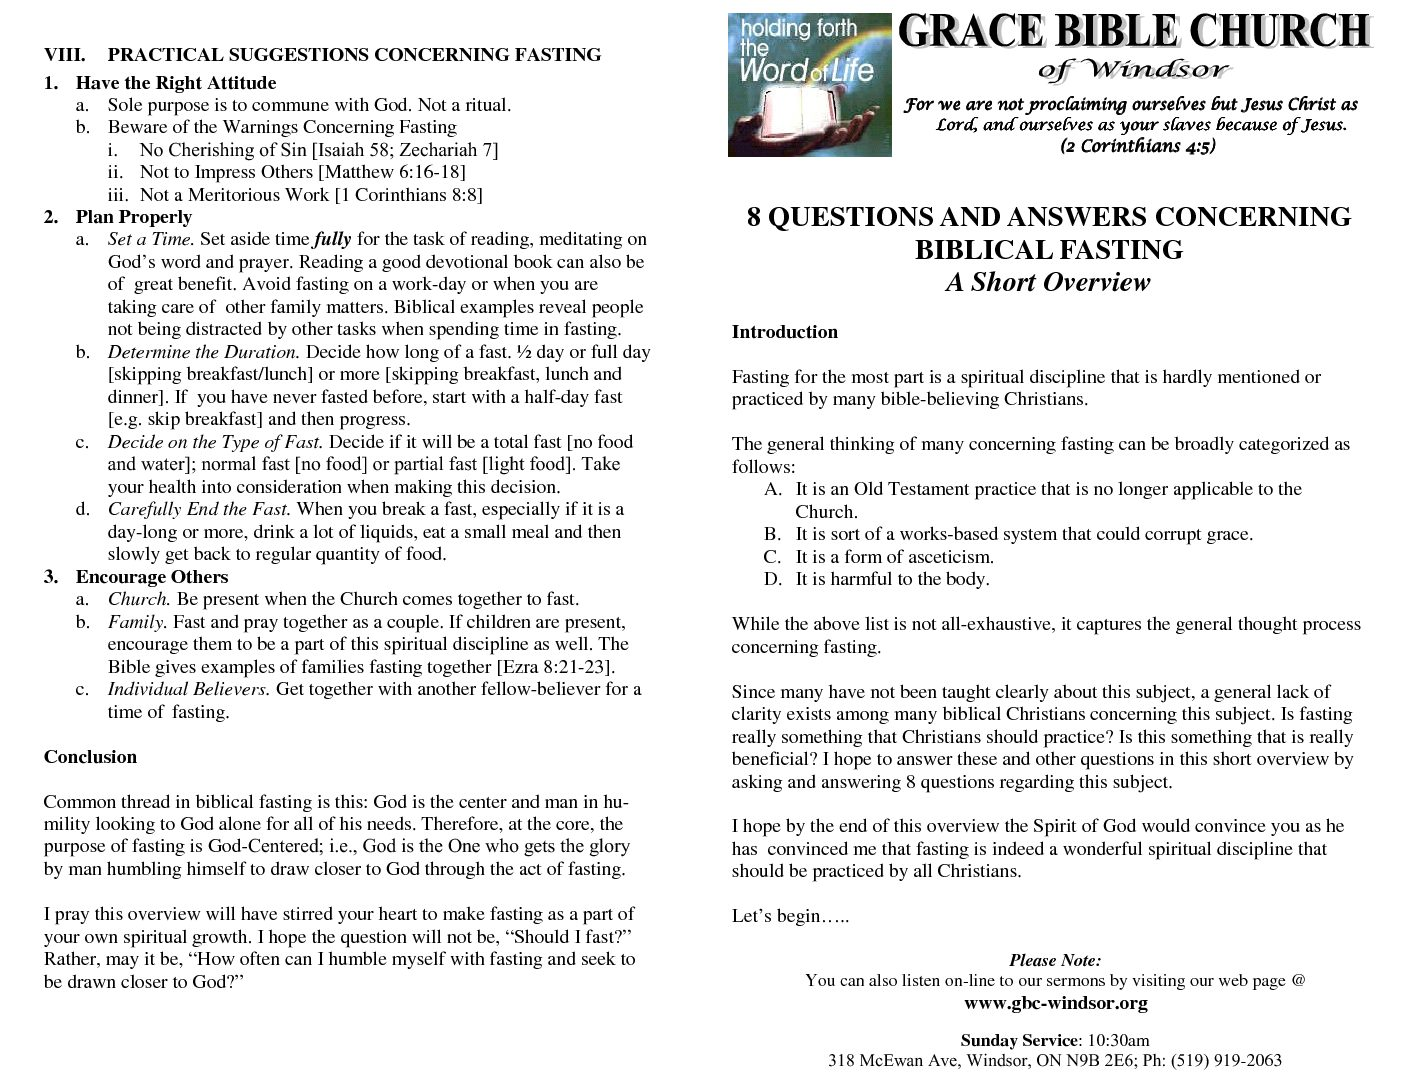 Grace Bible Church of Windsor 8 Questions and Answers